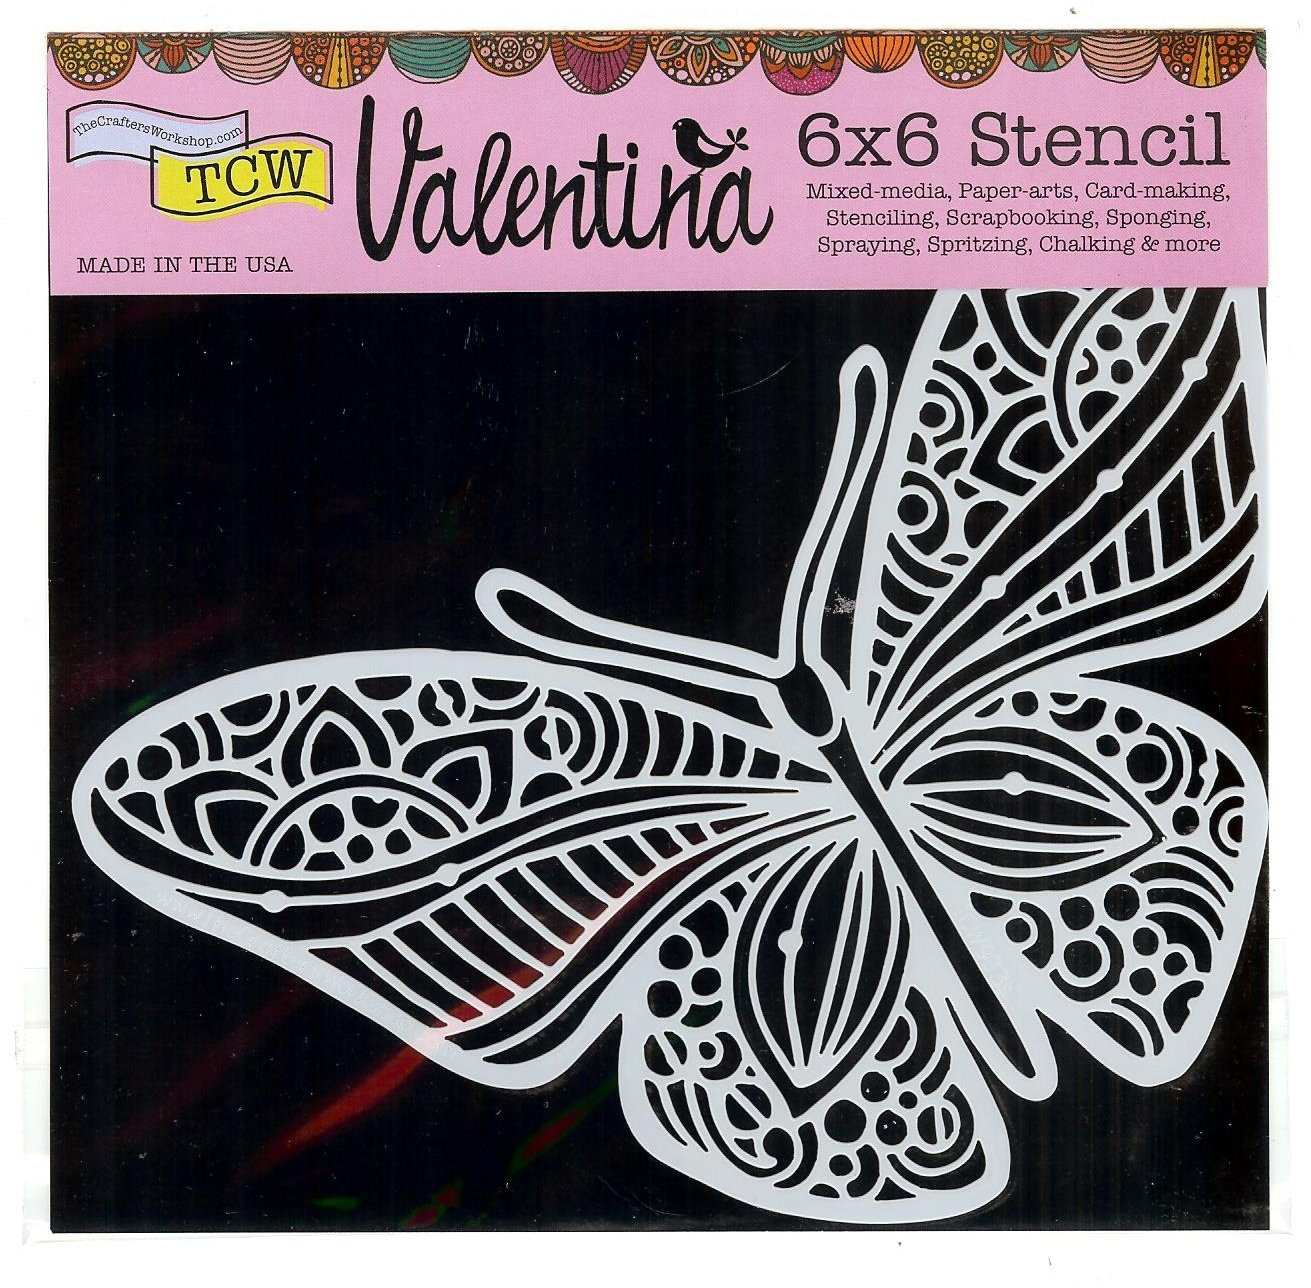 TCW The Crafters Workshop Stencil 6 x 6 Joyous Butterfly